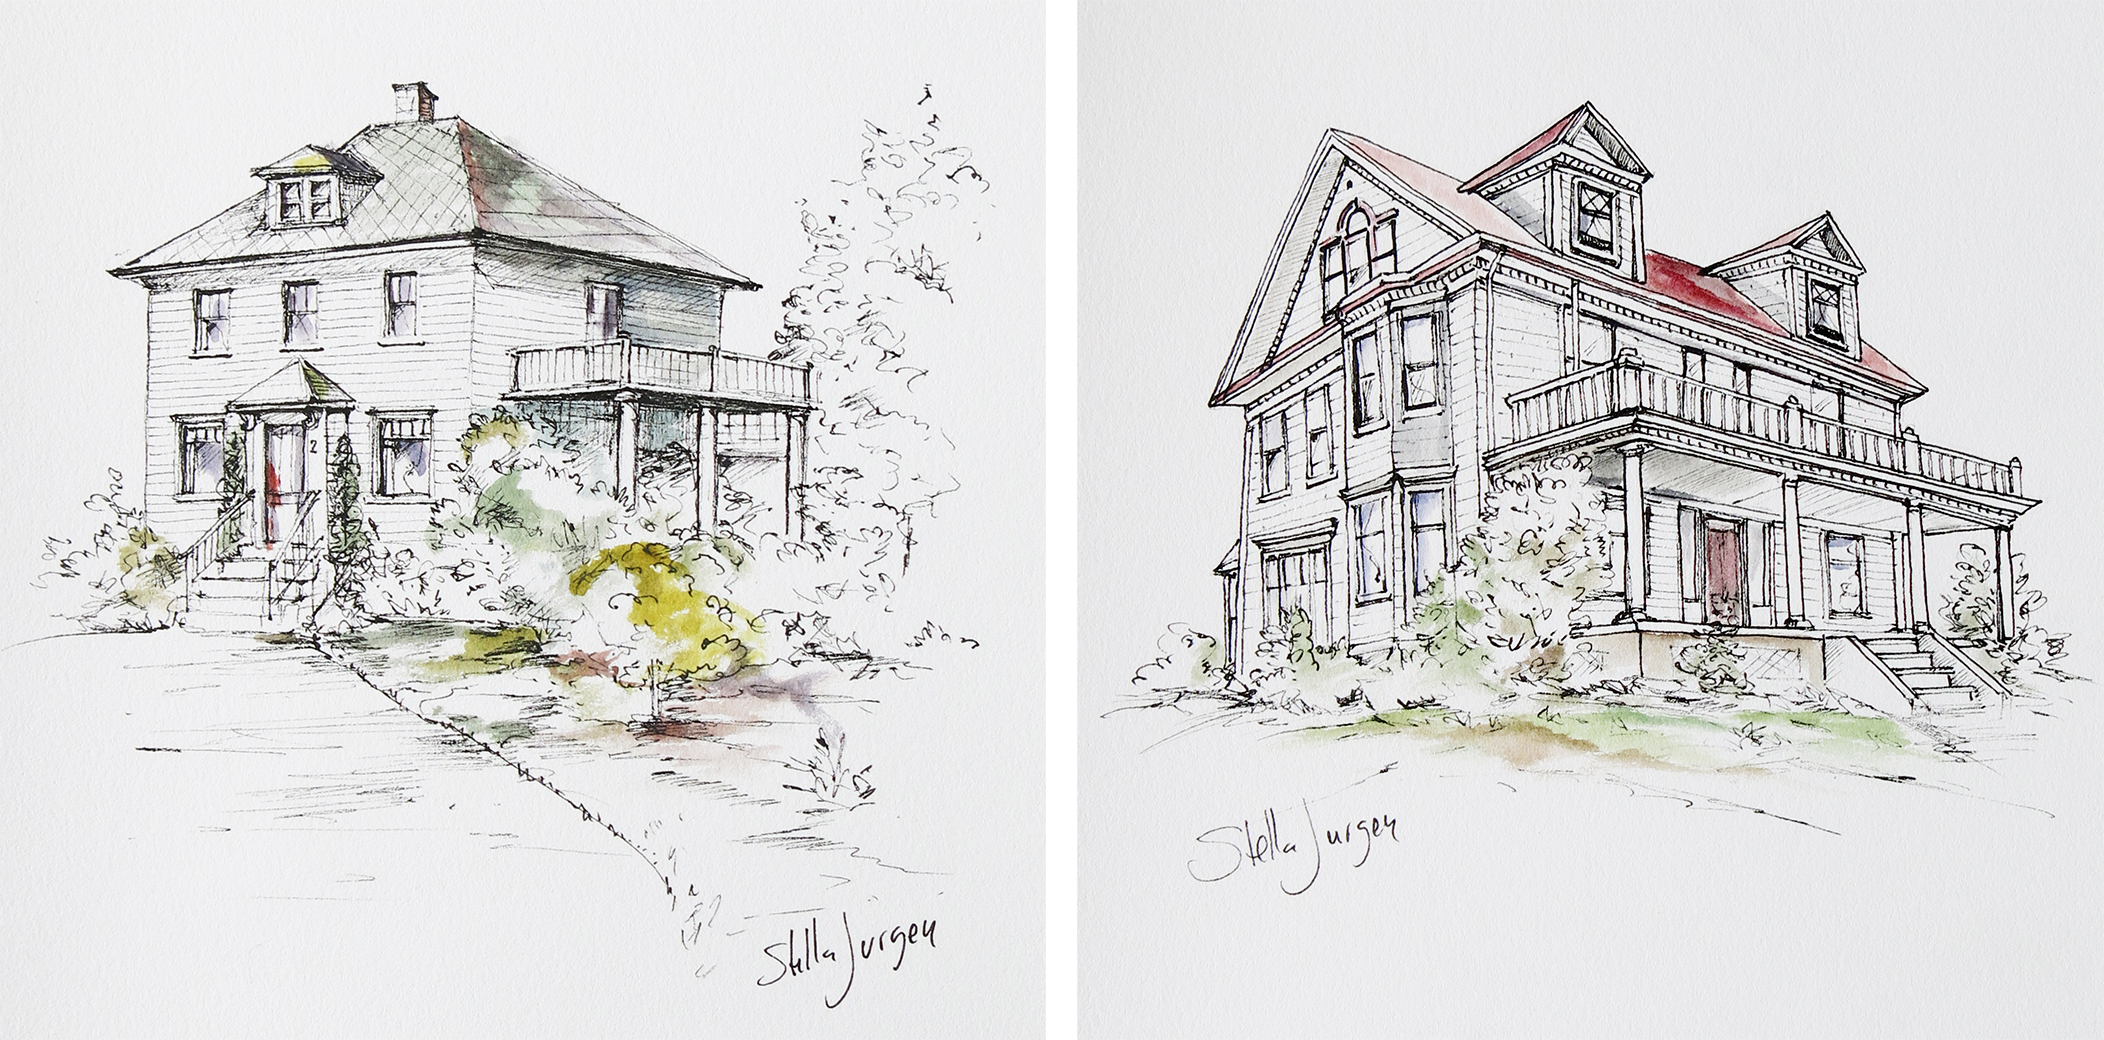 Stella-Jurgen-house-sketches-Nova-Scotia-Feb-2014